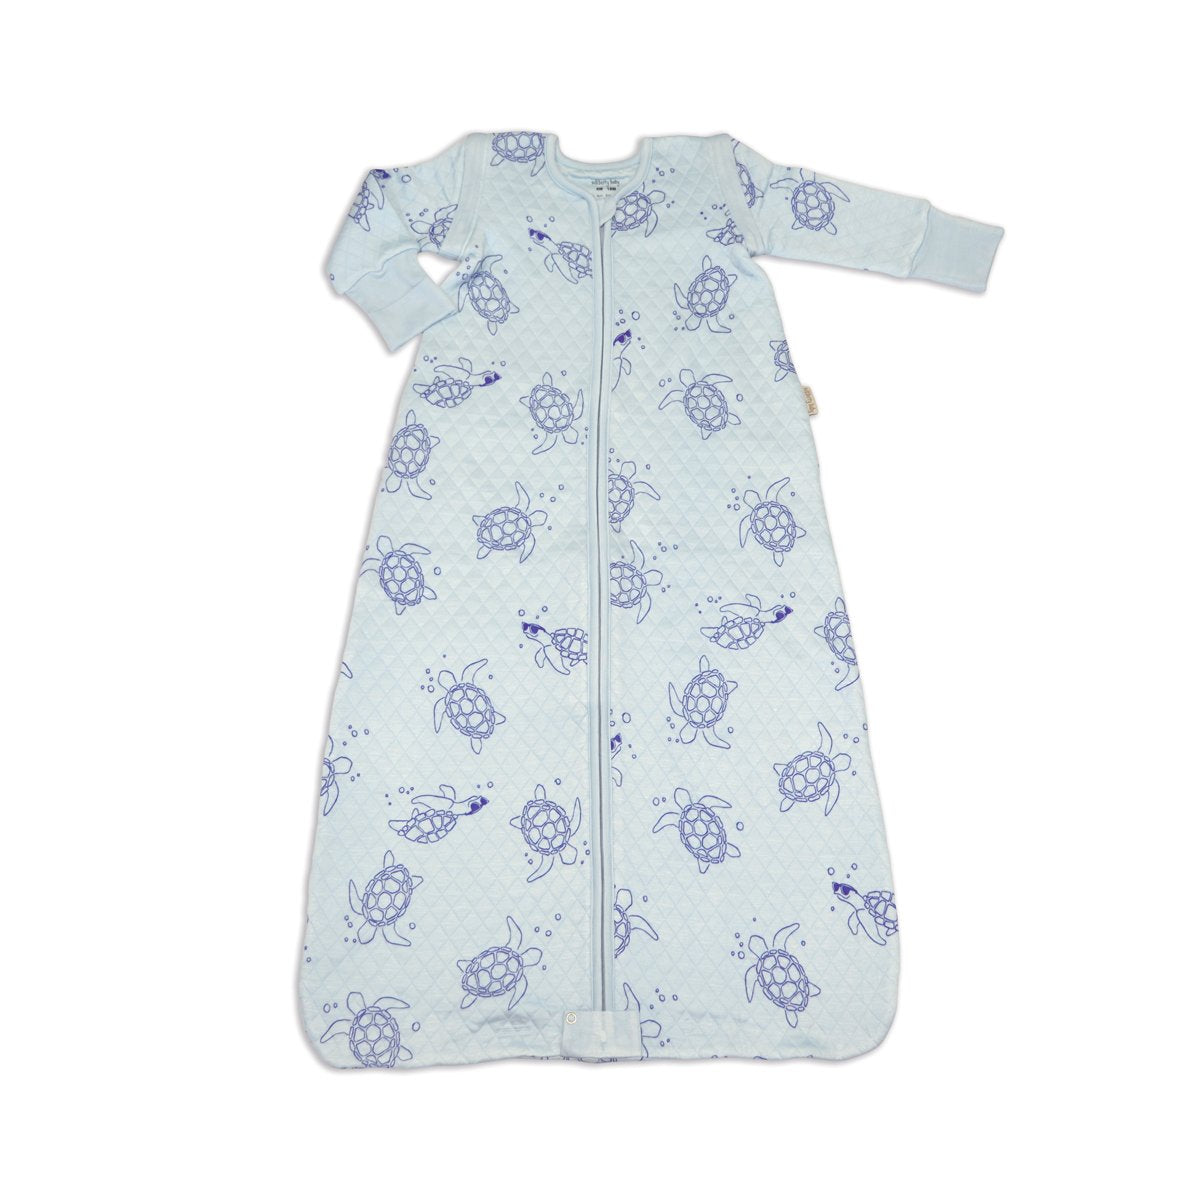 bamboo sleeping sack with detachable sleeves sea turtle print